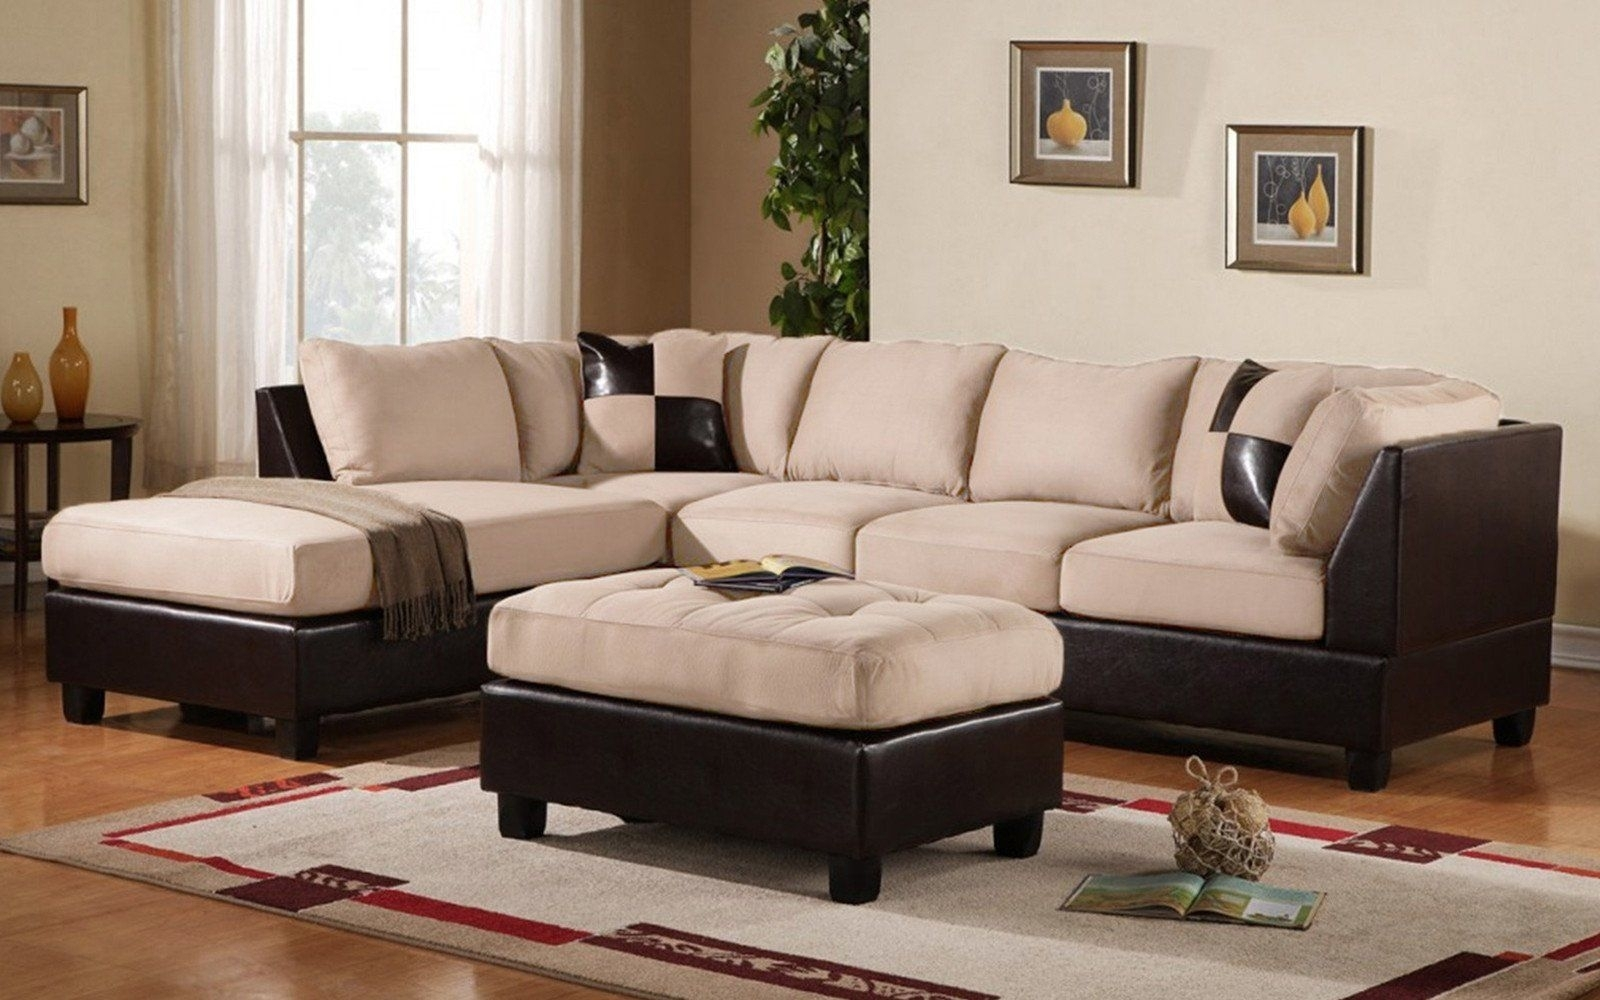 Koko Classic (3) Piece Microfiber And Faux Leather Sectional With Intended For Burton Leather 3 Piece Sectionals With Ottoman (Image 14 of 25)